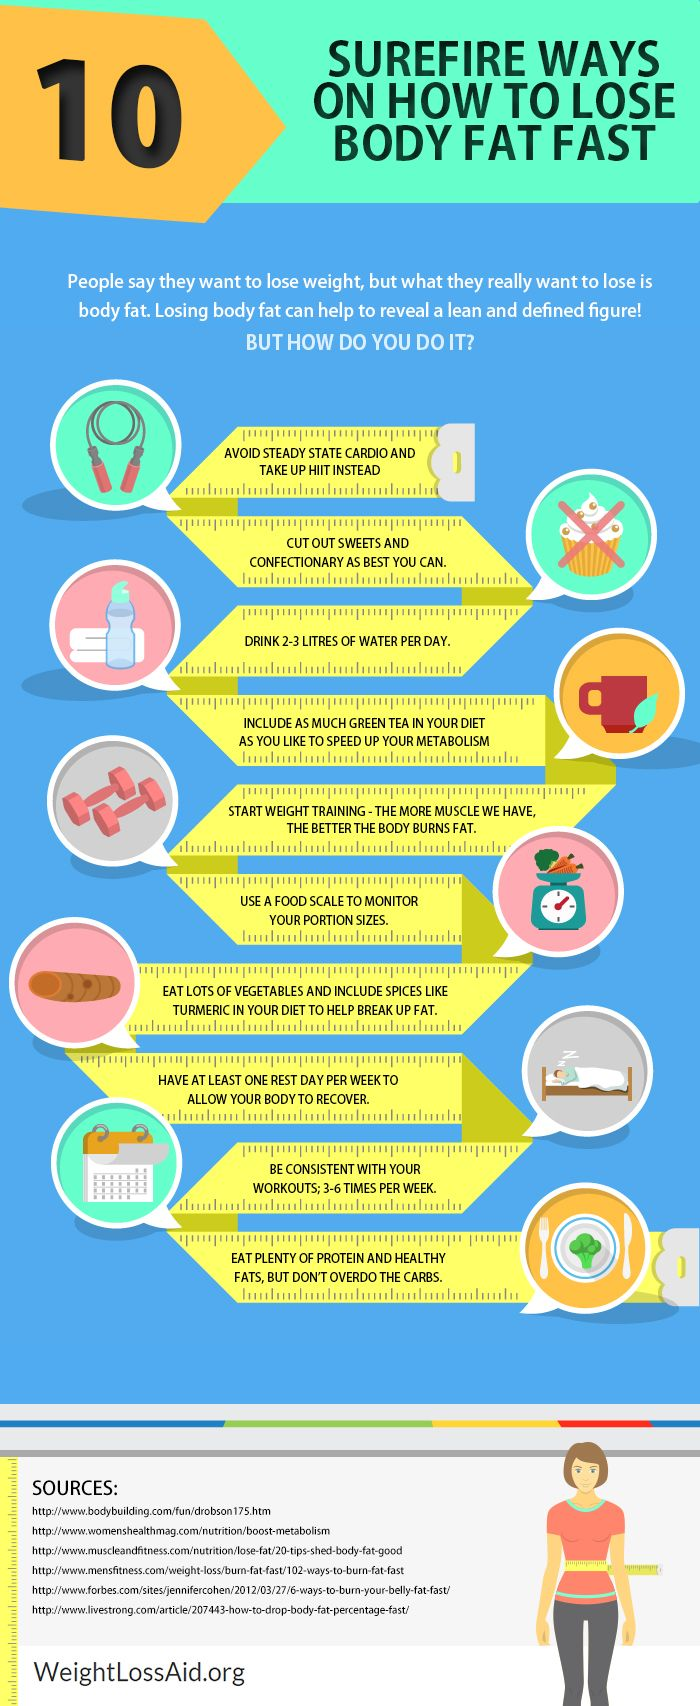 Weight loss tips to help you lose weight and keep it off. These are healthy weight loss tips are SCIENTIFICALLY PROVEN & PROVEN BY PRACTICE!